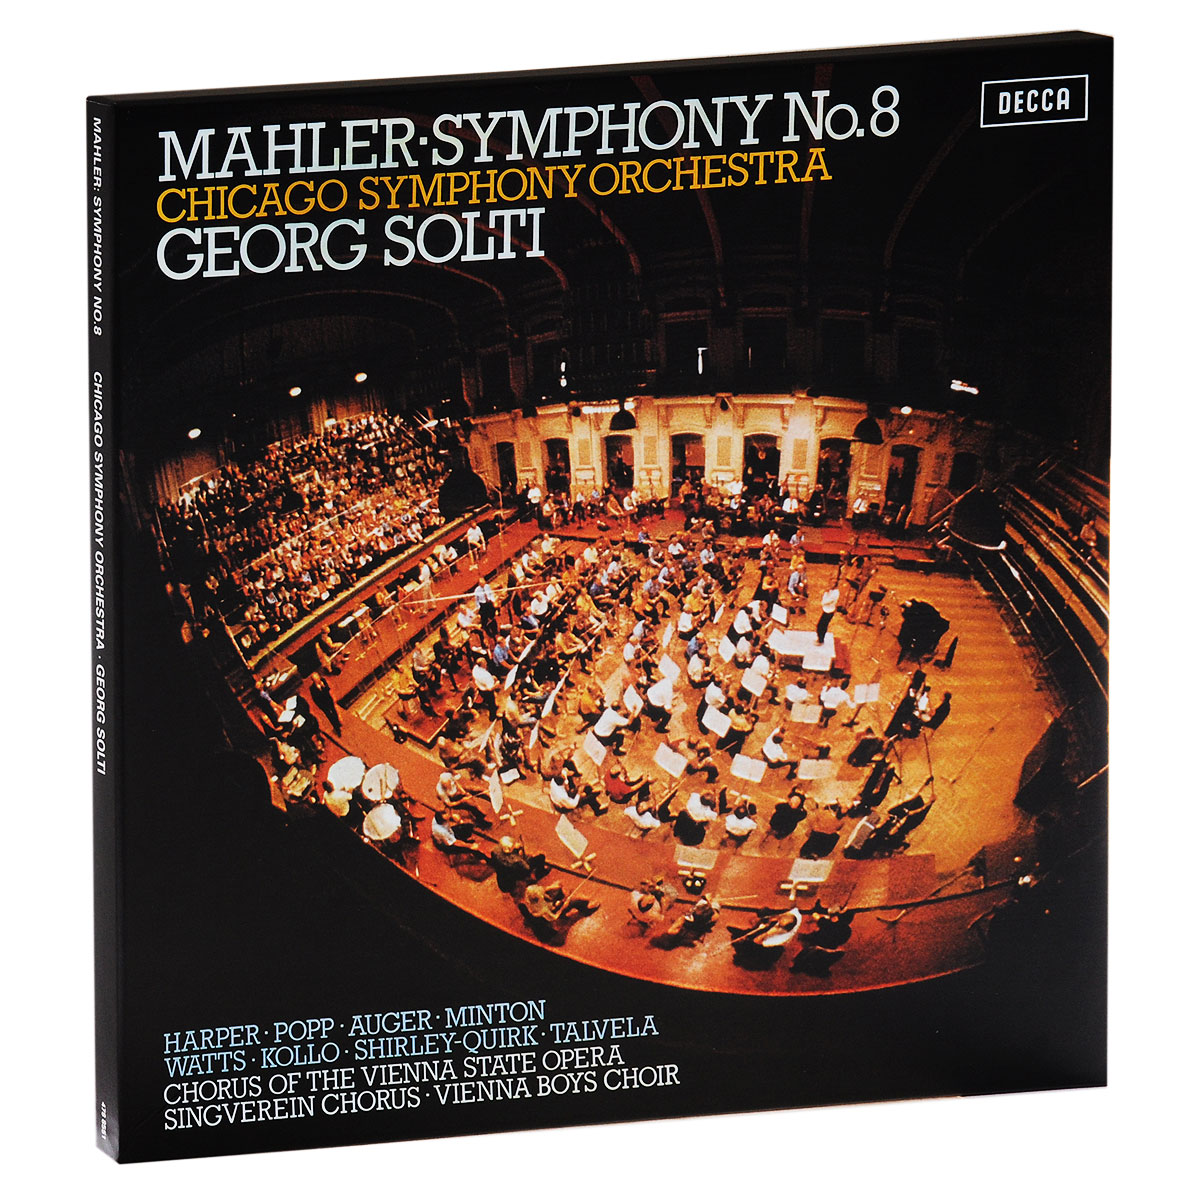 Георг Шолти,Chicago Symphony Orchestra Georg Solti. Mahler. Symphony No. 8 (2 LP) георг шолти chicago symphony orchestra chicago symphony chorus sir georg solti chicago symphony orchestra beethoven the symphonies 7 cd